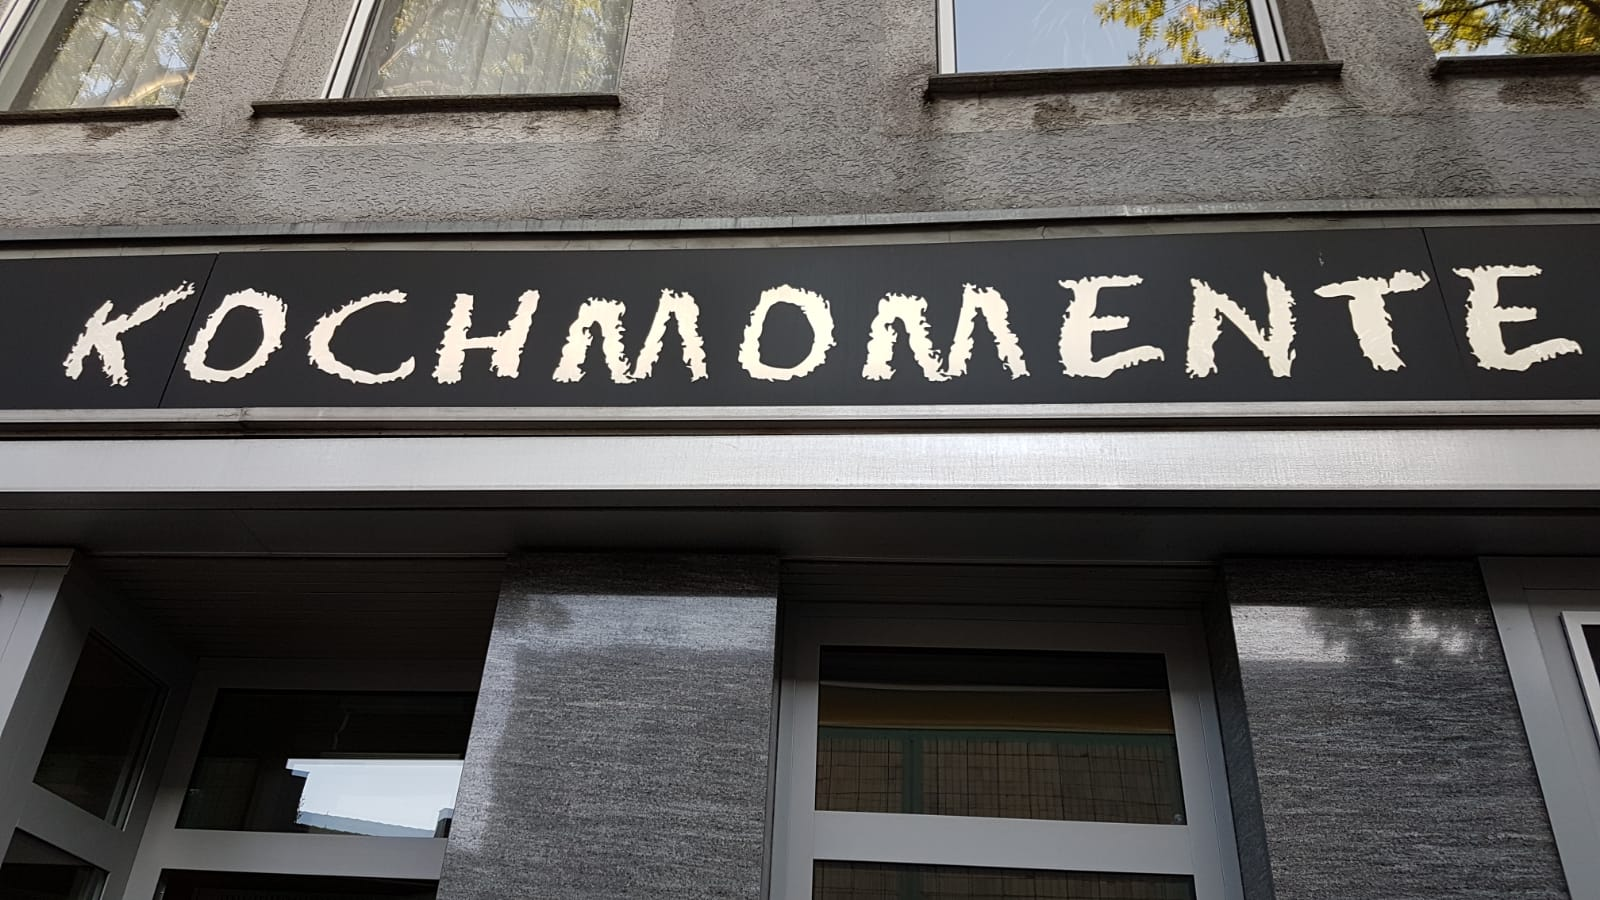 Kochmomente in Bochum